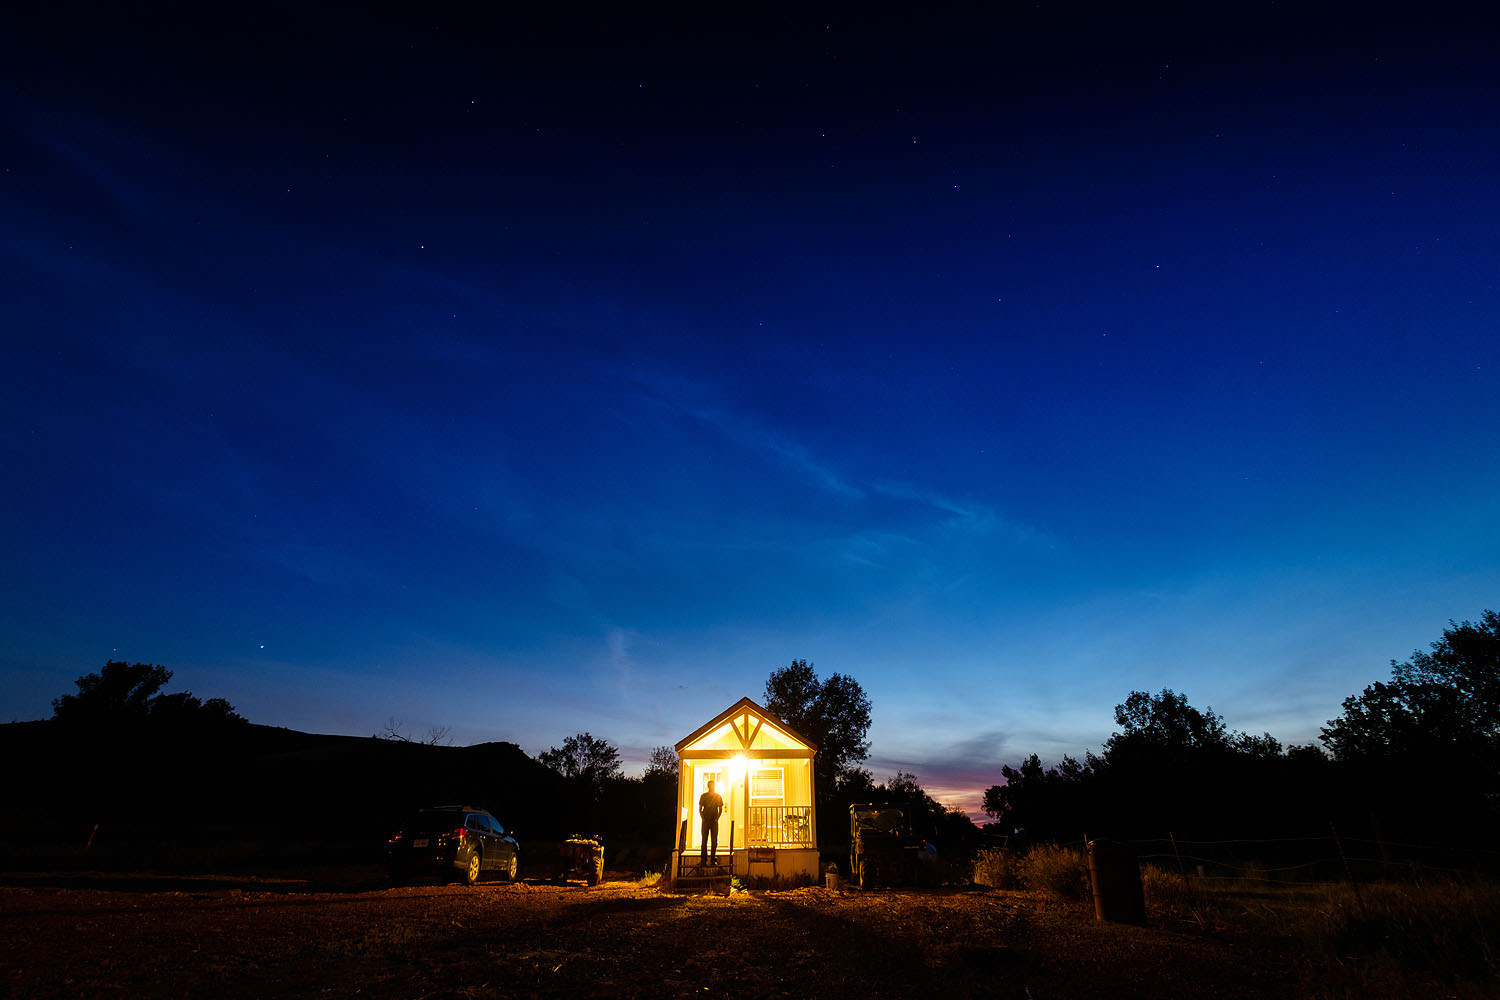 The Big Dipper over a tiny house